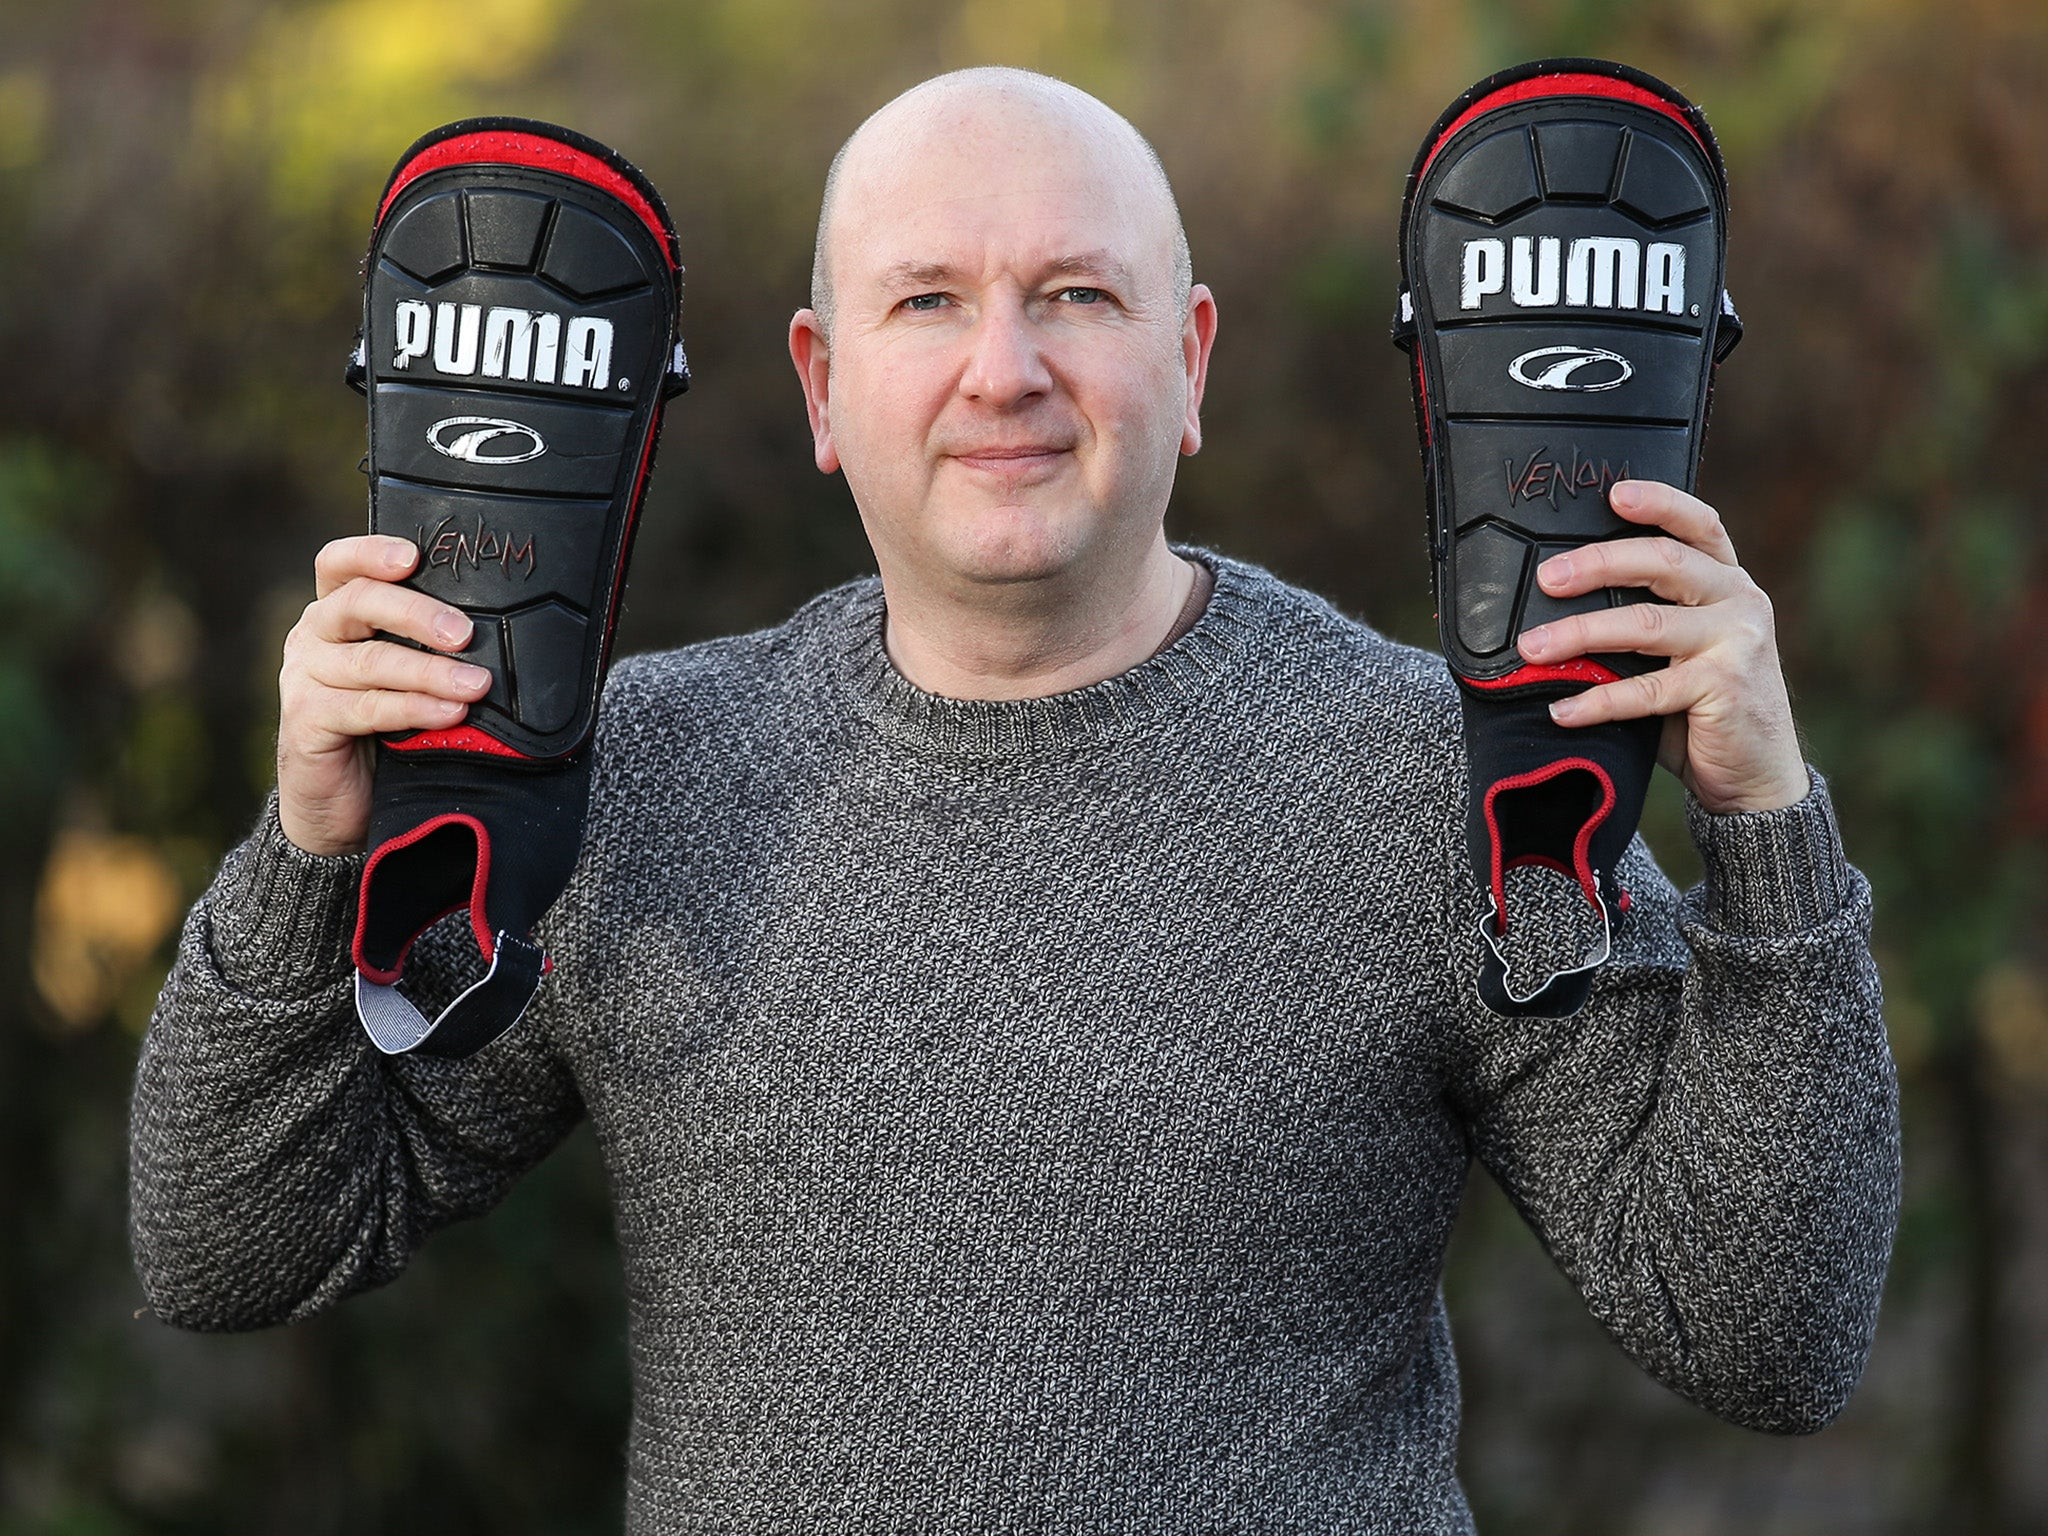 Footballer saved from amputation after car crash because he wearing shinpads